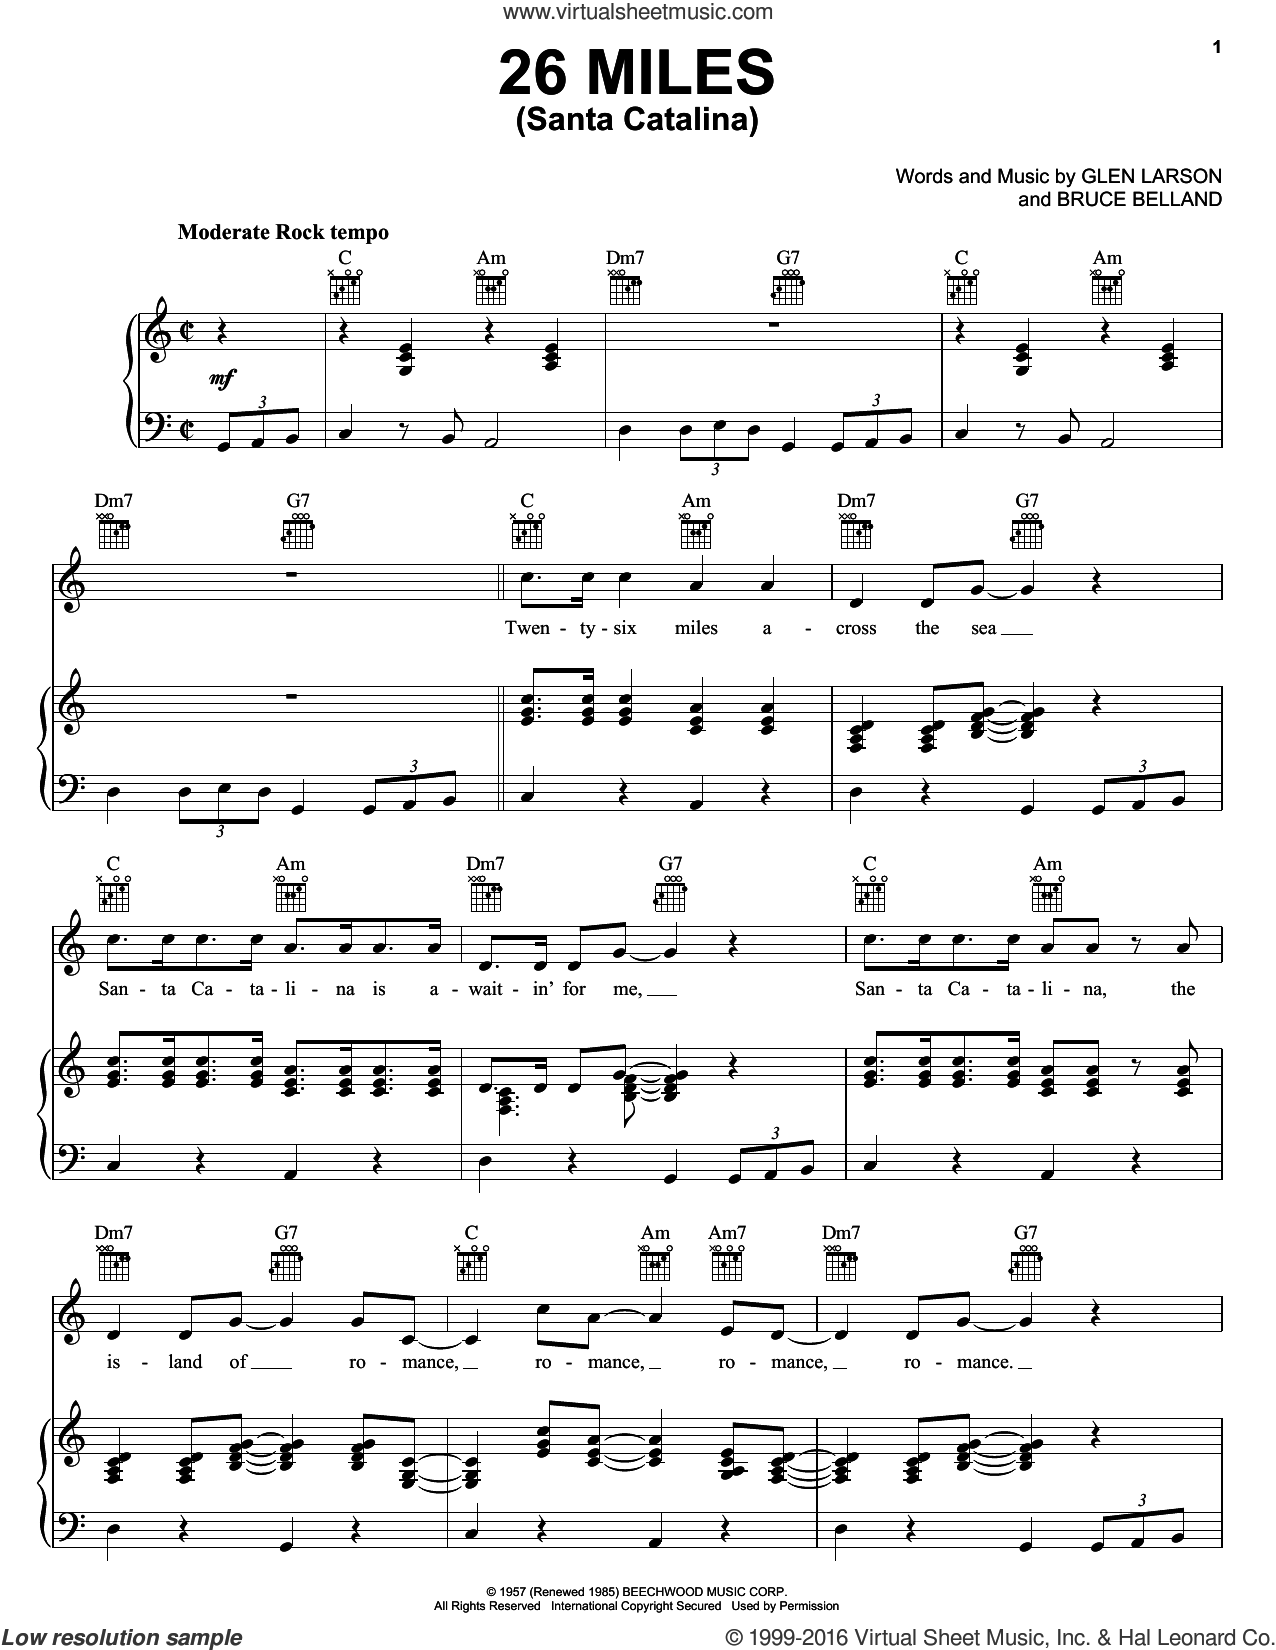 26 Miles (Santa Catalina) sheet music for voice, piano or guitar by Four Preps, Bruce Belland and Glen Larson, intermediate skill level